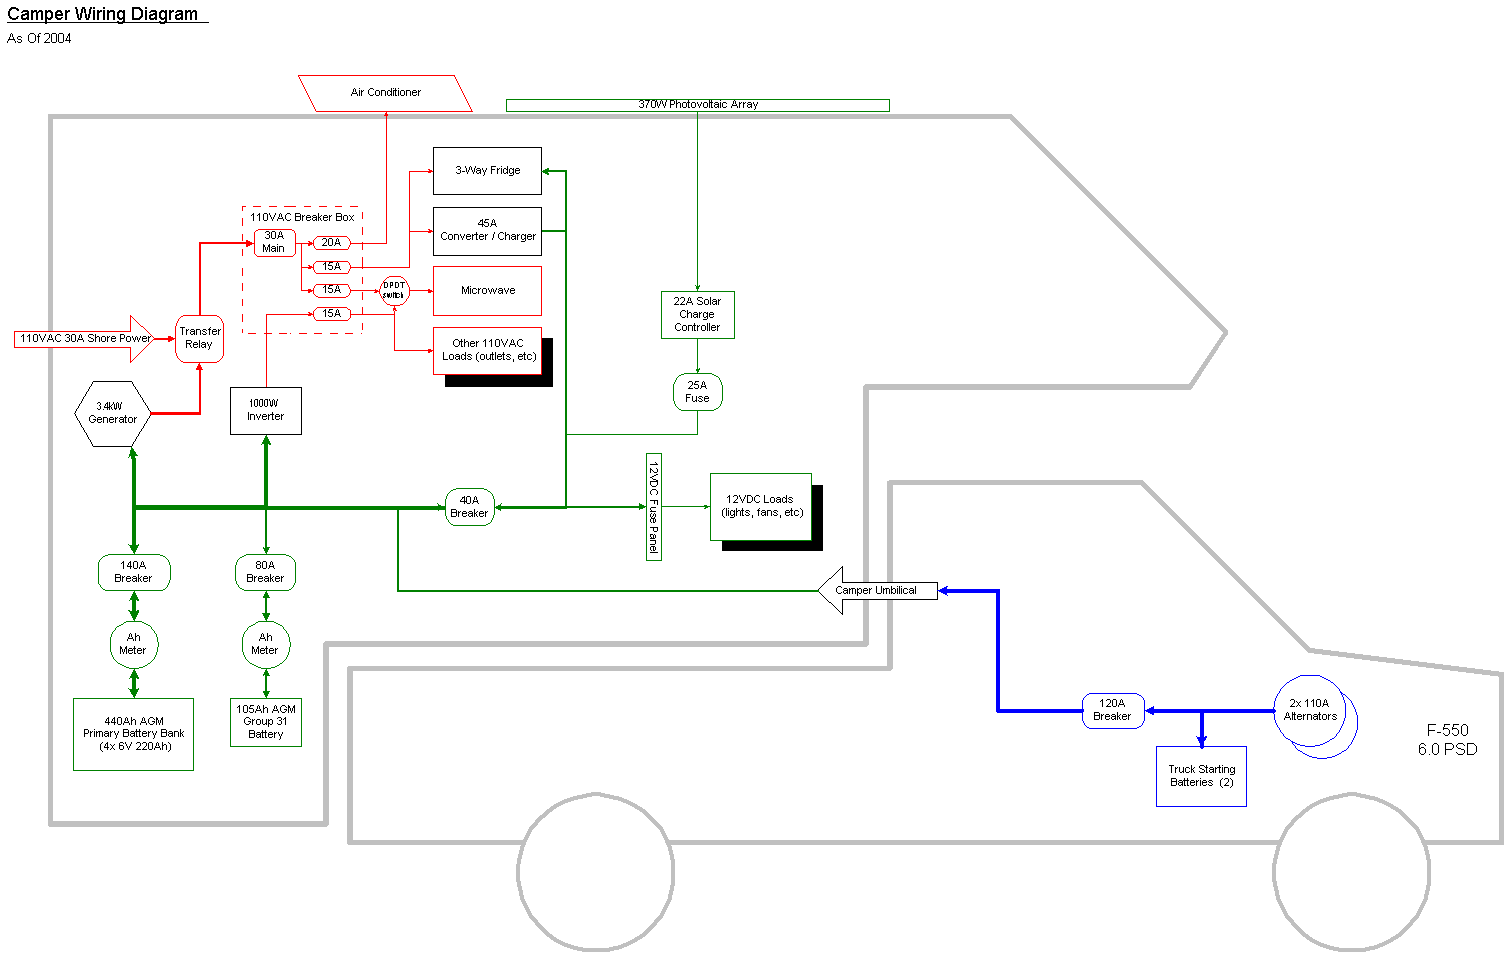 2004Diagram rv wiring diagrams 6 pole round wiring diagram \u2022 wiring diagrams truck camper wiring harness at bakdesigns.co